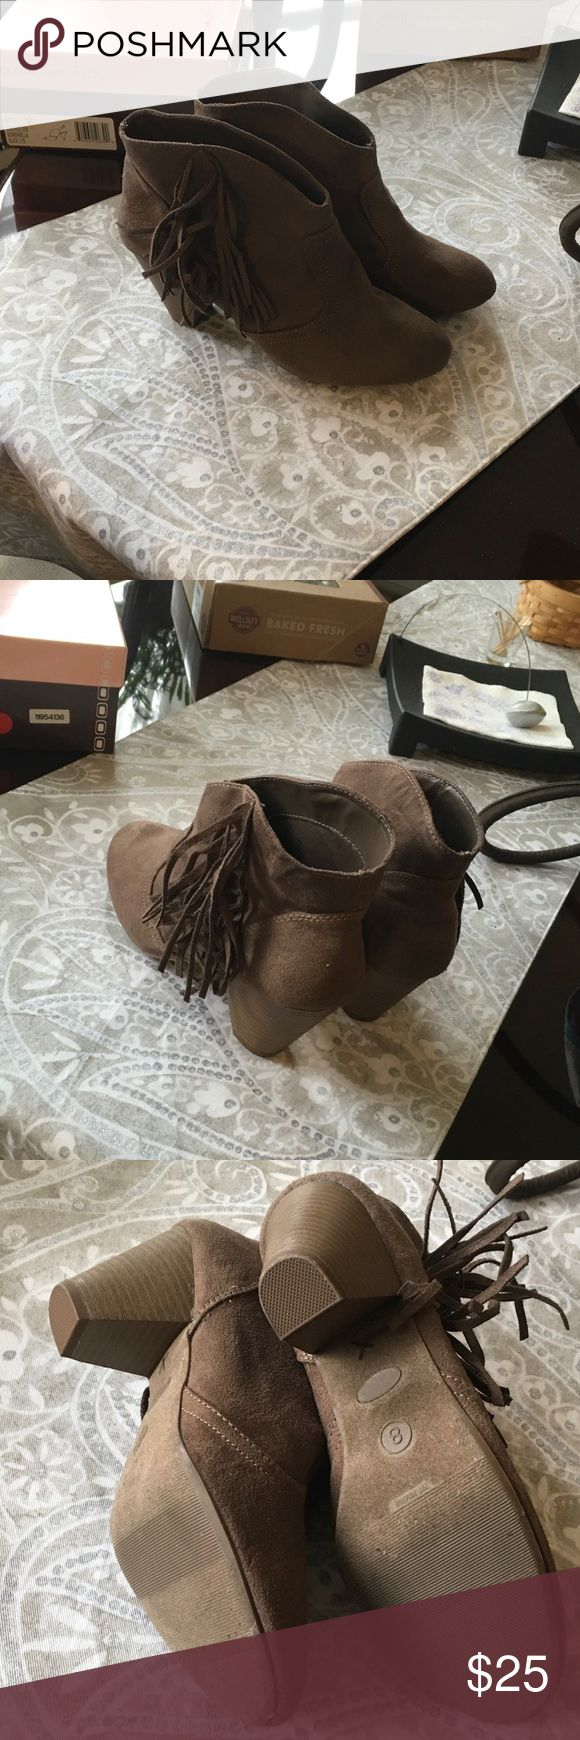 Suede boots from American outfitters Brown with fringes on side American Eagle Outfitters Shoes Heeled Boots